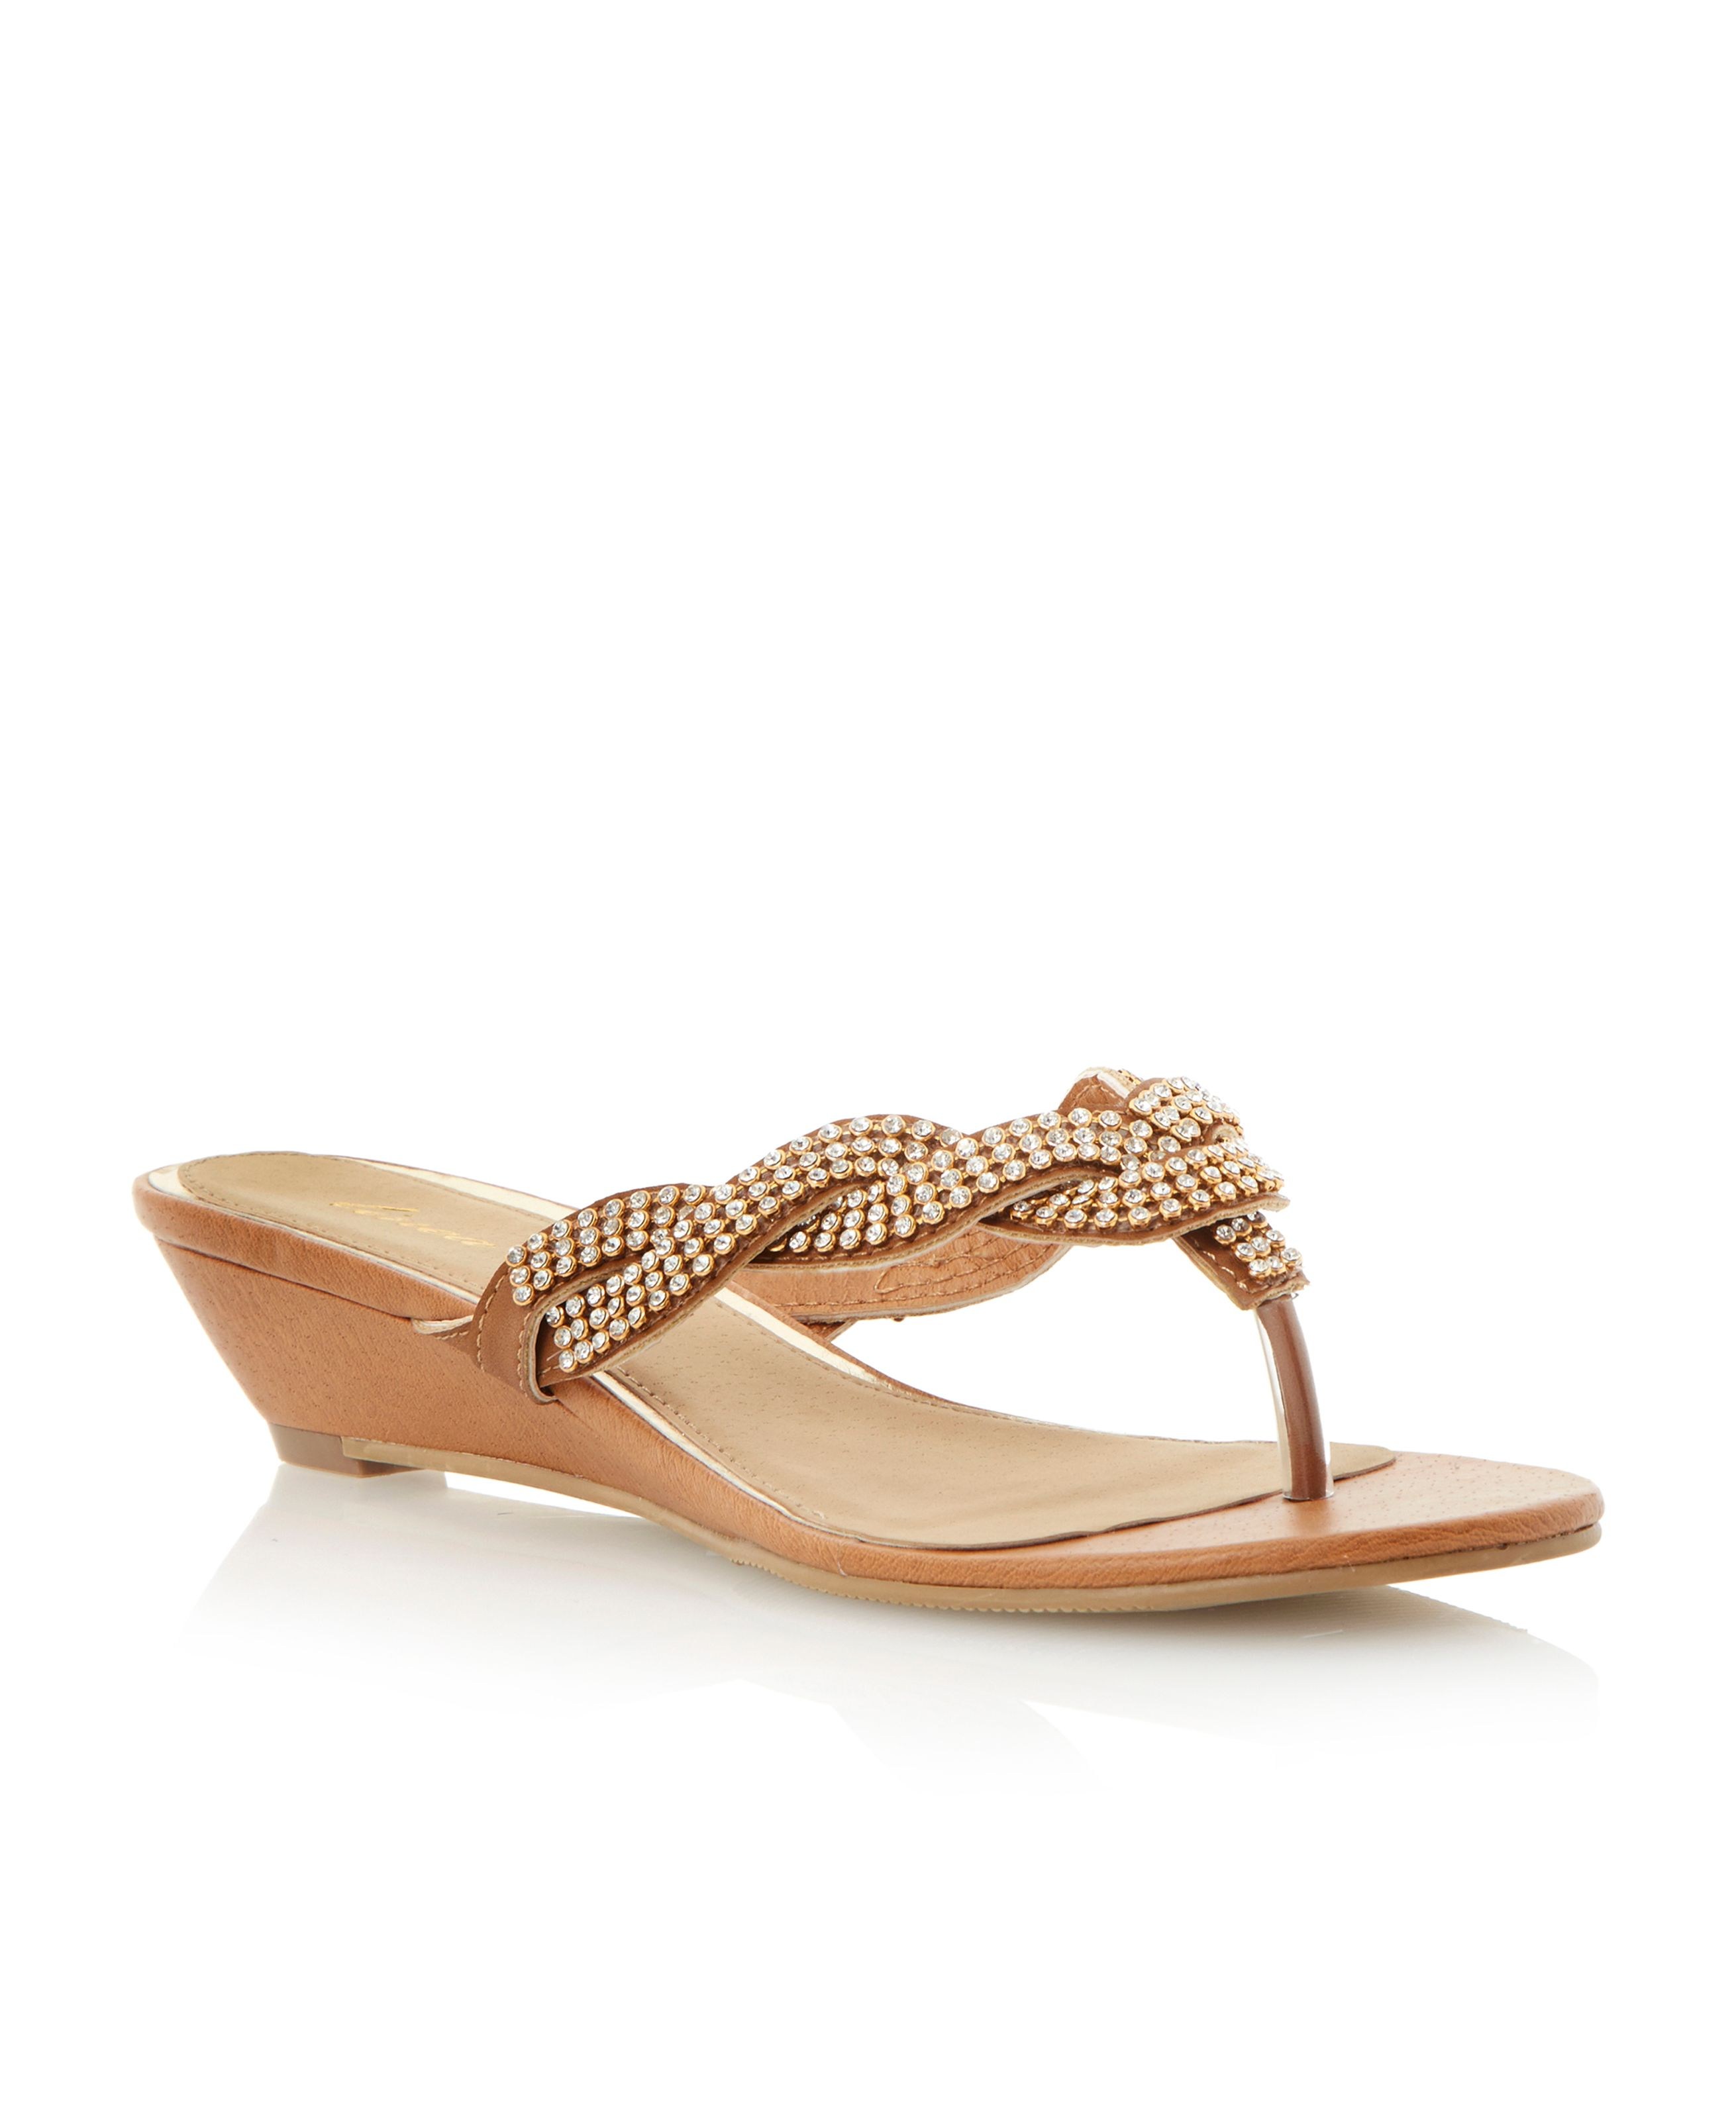 Gibilous diamante low wedge sandals